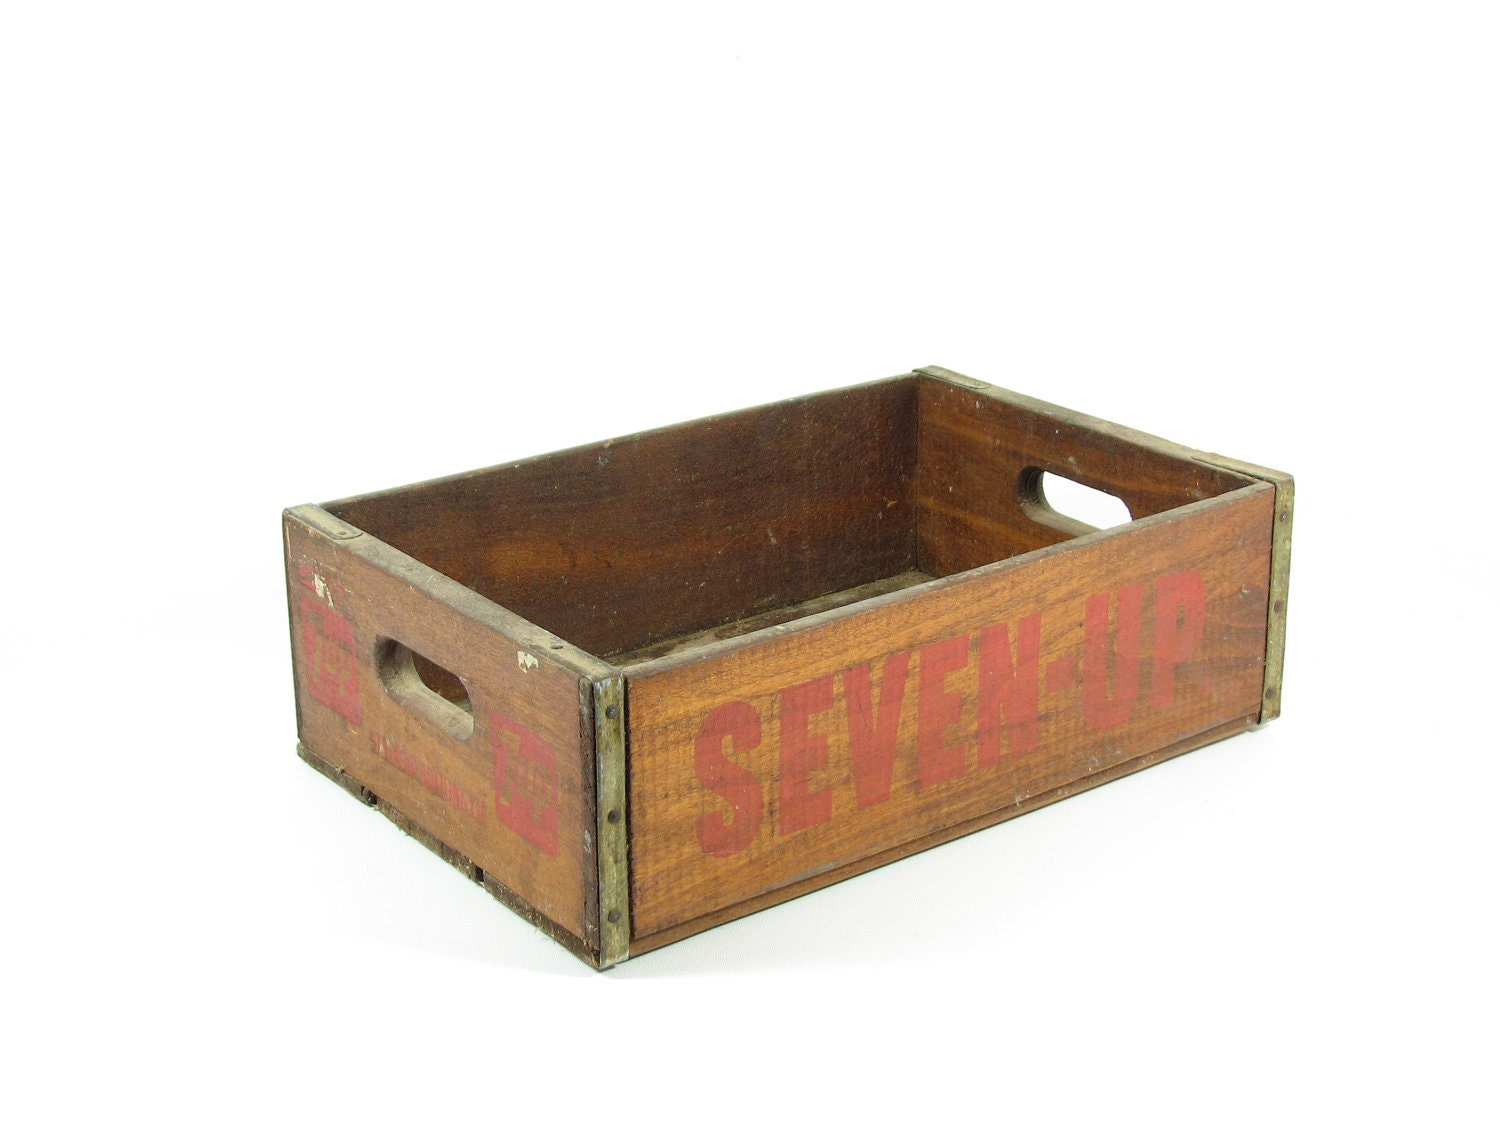 Vintage wood crate wooden box 7 up soda pop crate shadow box for Old wooden crates